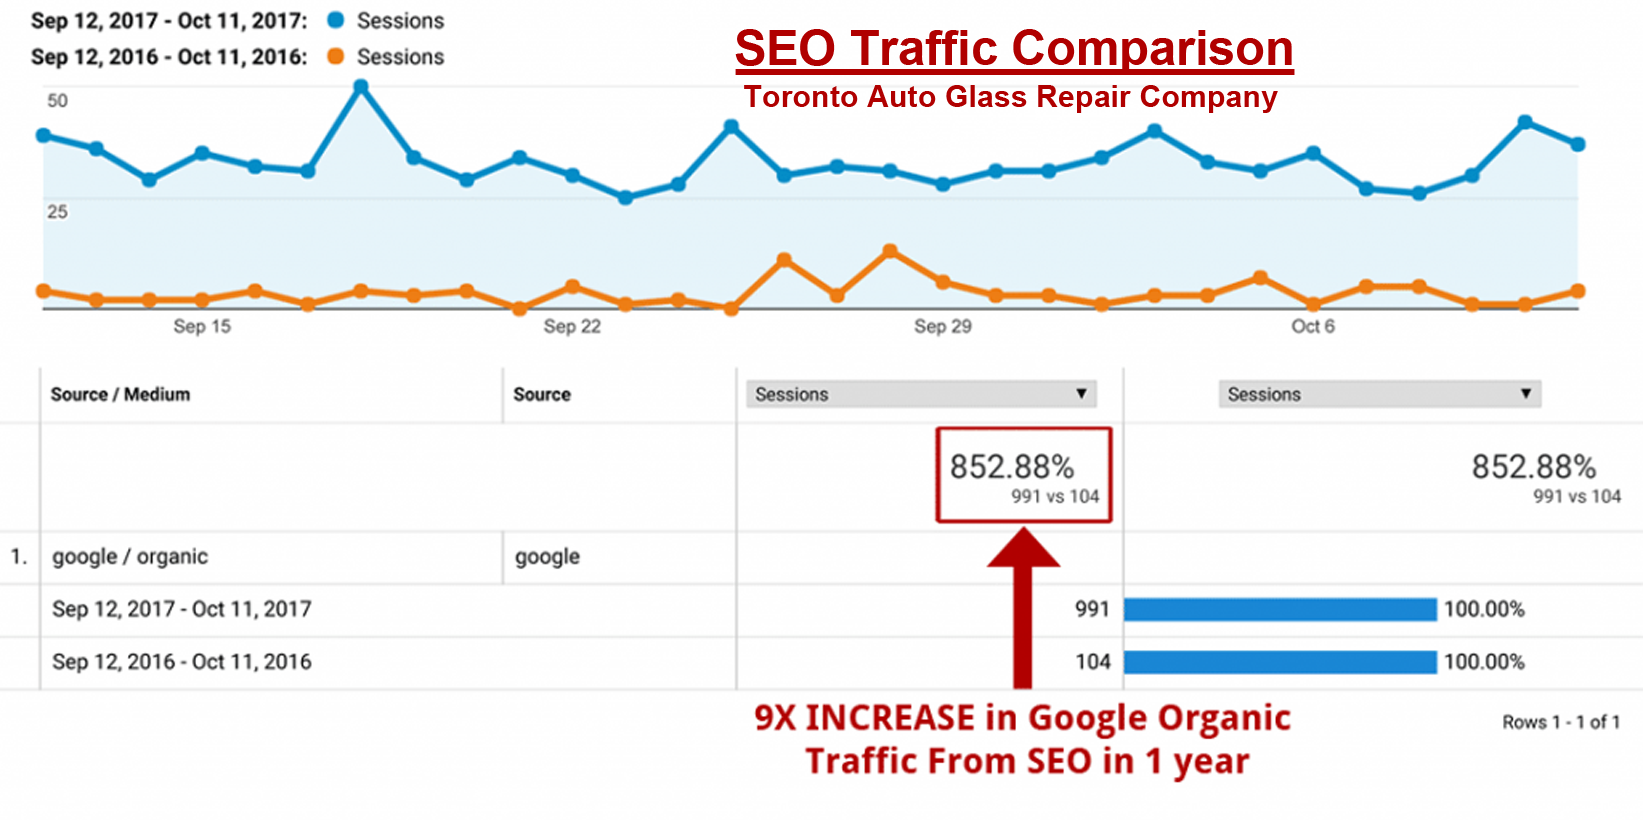 Traffic Comparison After SEO